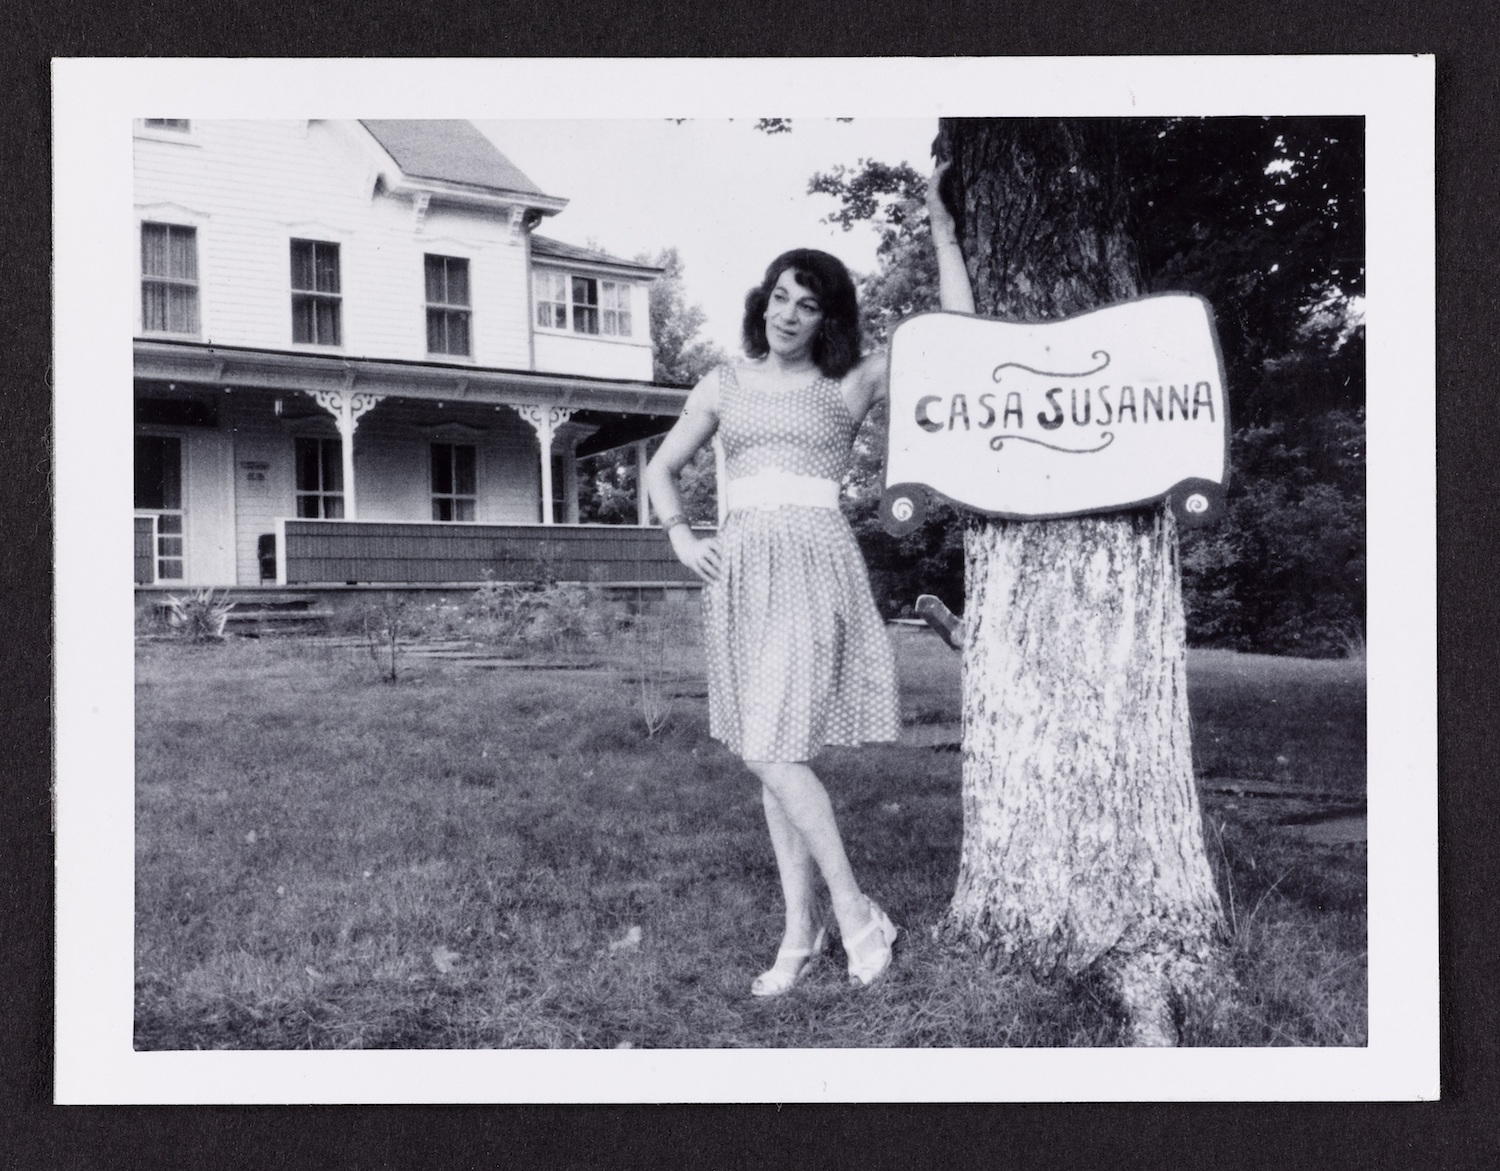 Susanna at Casa Susanna, Casa Susanna Collection, Attributed to Andrea Susan, 1964-1969 © Art Gallery of Ontario